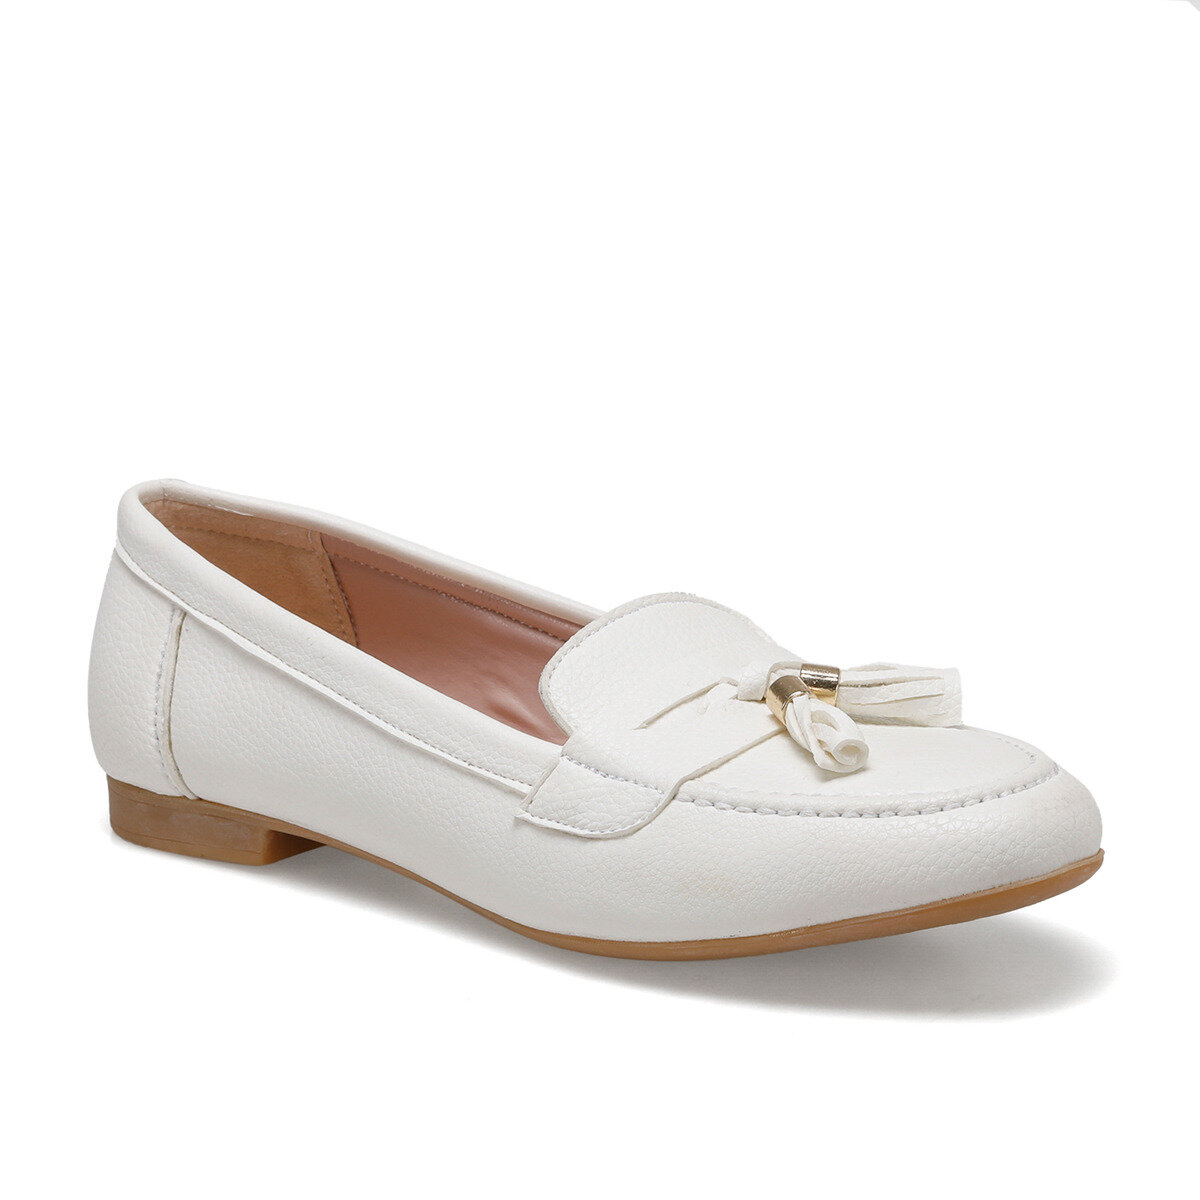 flo-ds20051-white-women-loafer-shoes-miss-f